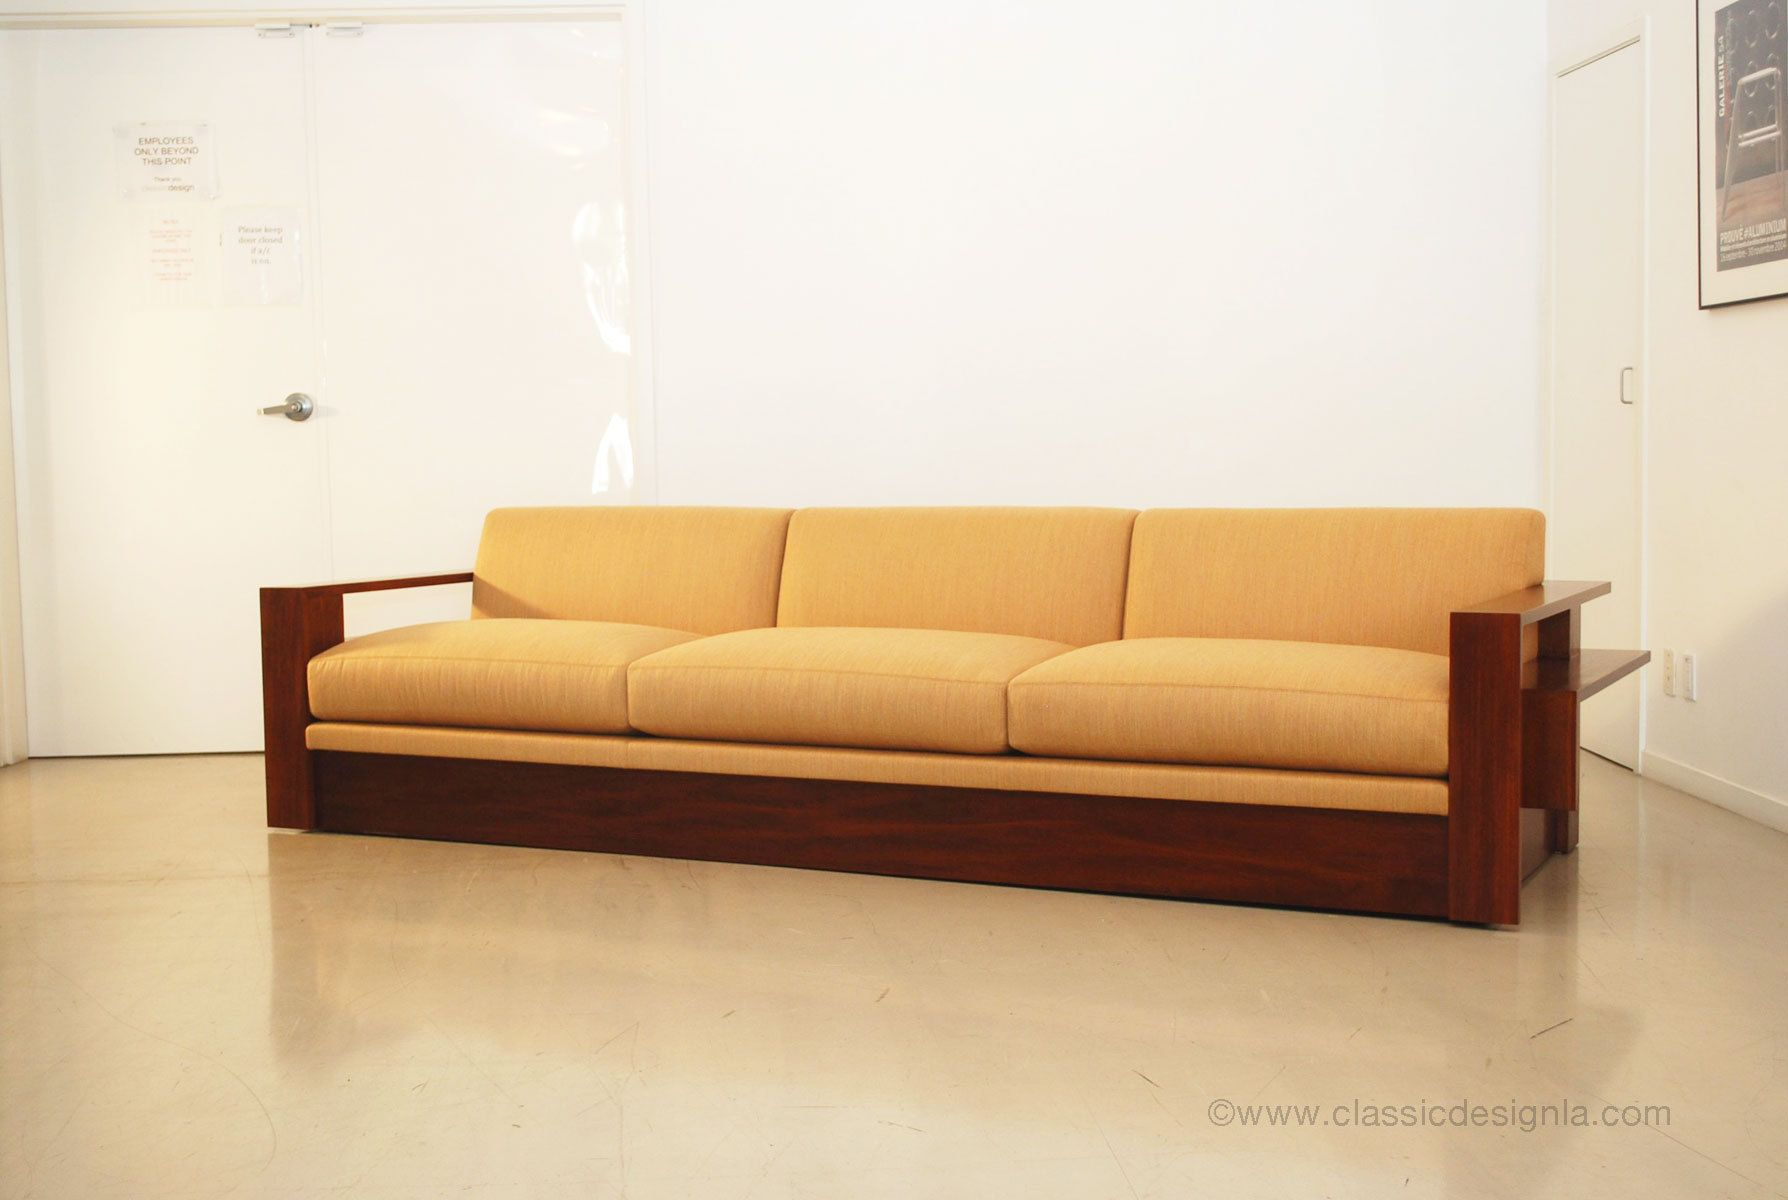 Custom Wood Frame Sofa Google Search Wood Frame Sofas